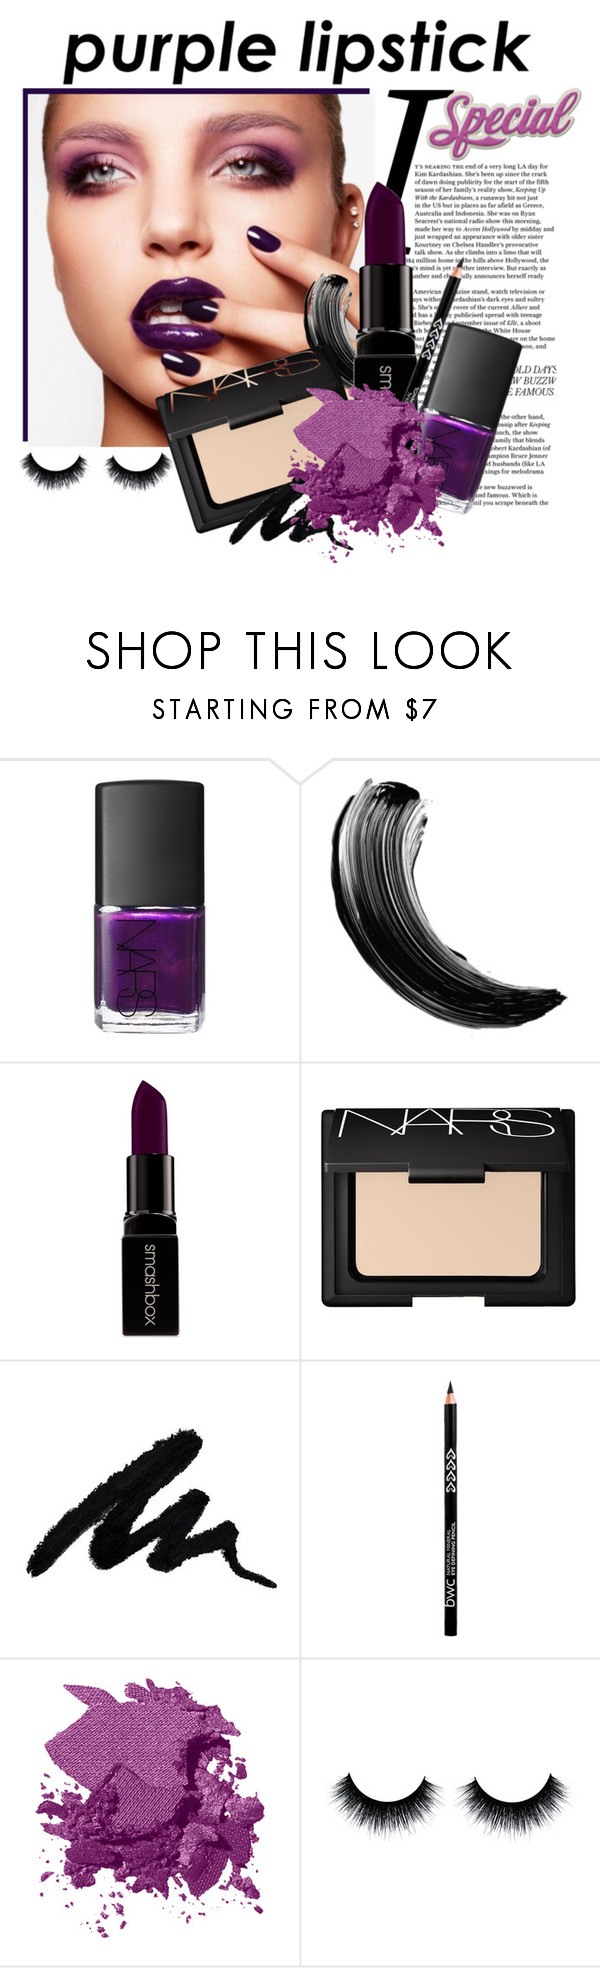 """""""purple lipstick"""" by divacrafts ❤ liked on Polyvore featuring beauty, NARS Cosmetics, Smashbox, Bobbi Brown Cosmetics and Original"""